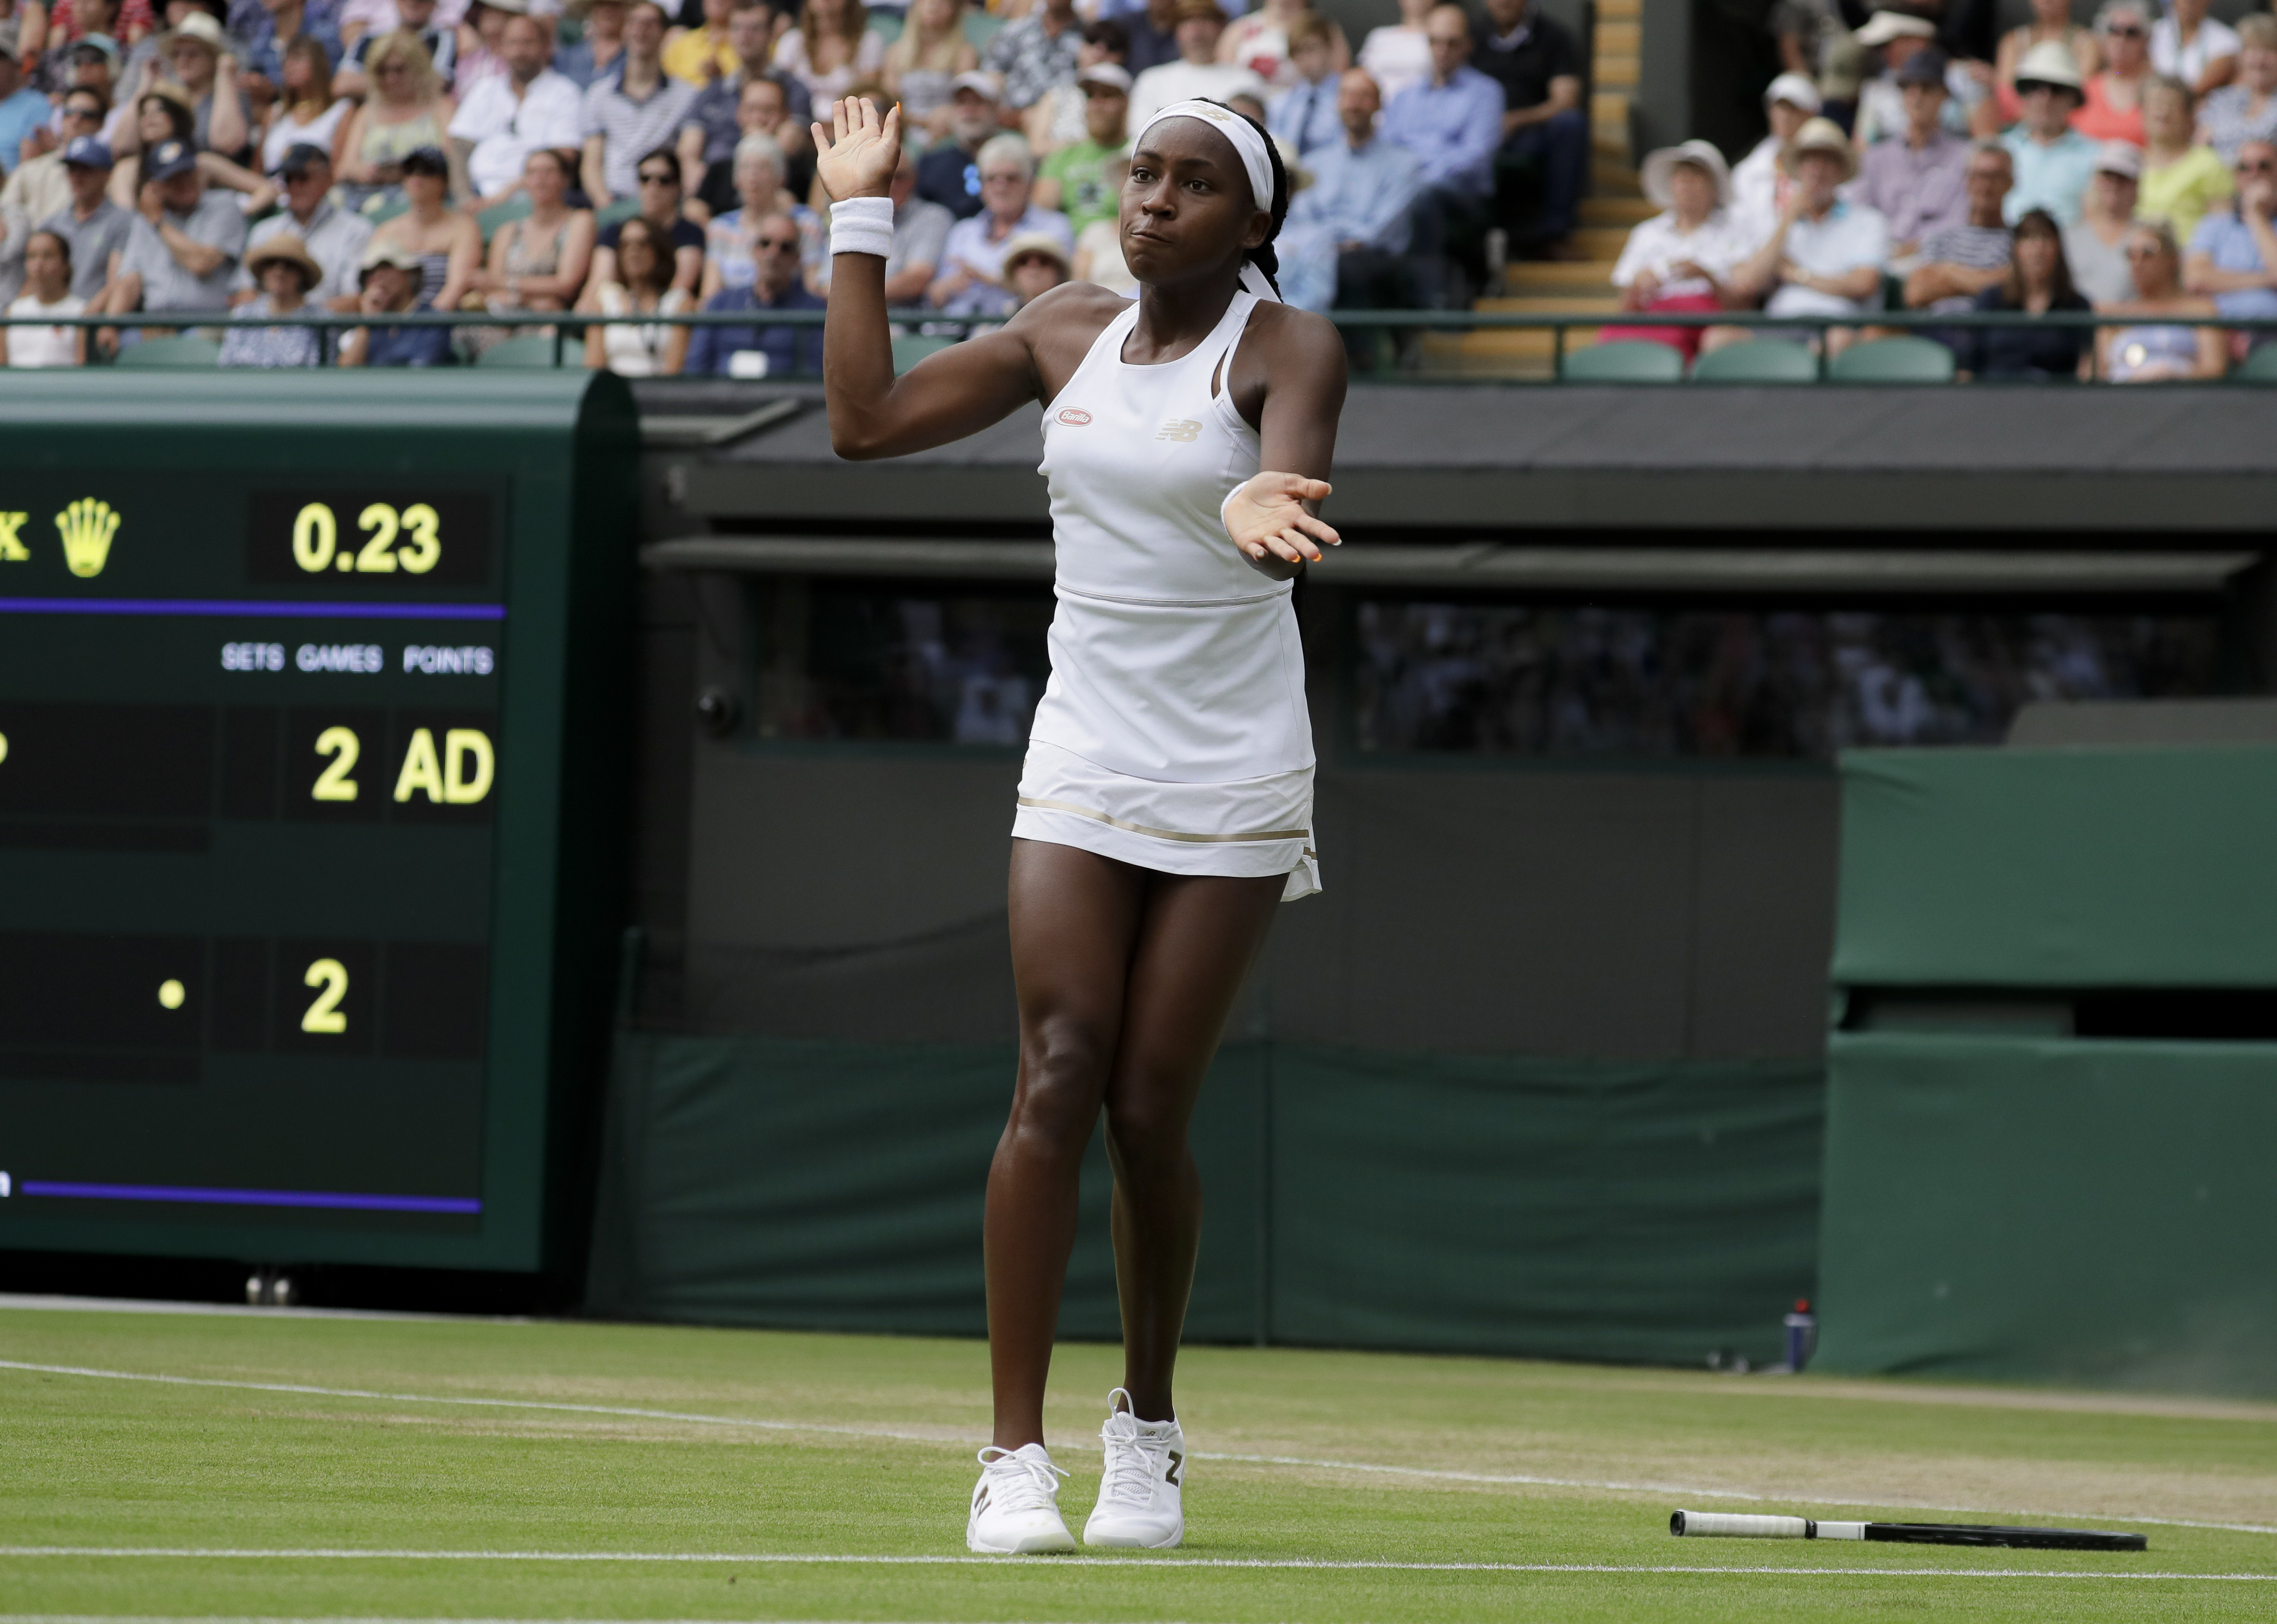 Gauff drops her racquet after missing a point against Halep. Credit: PA